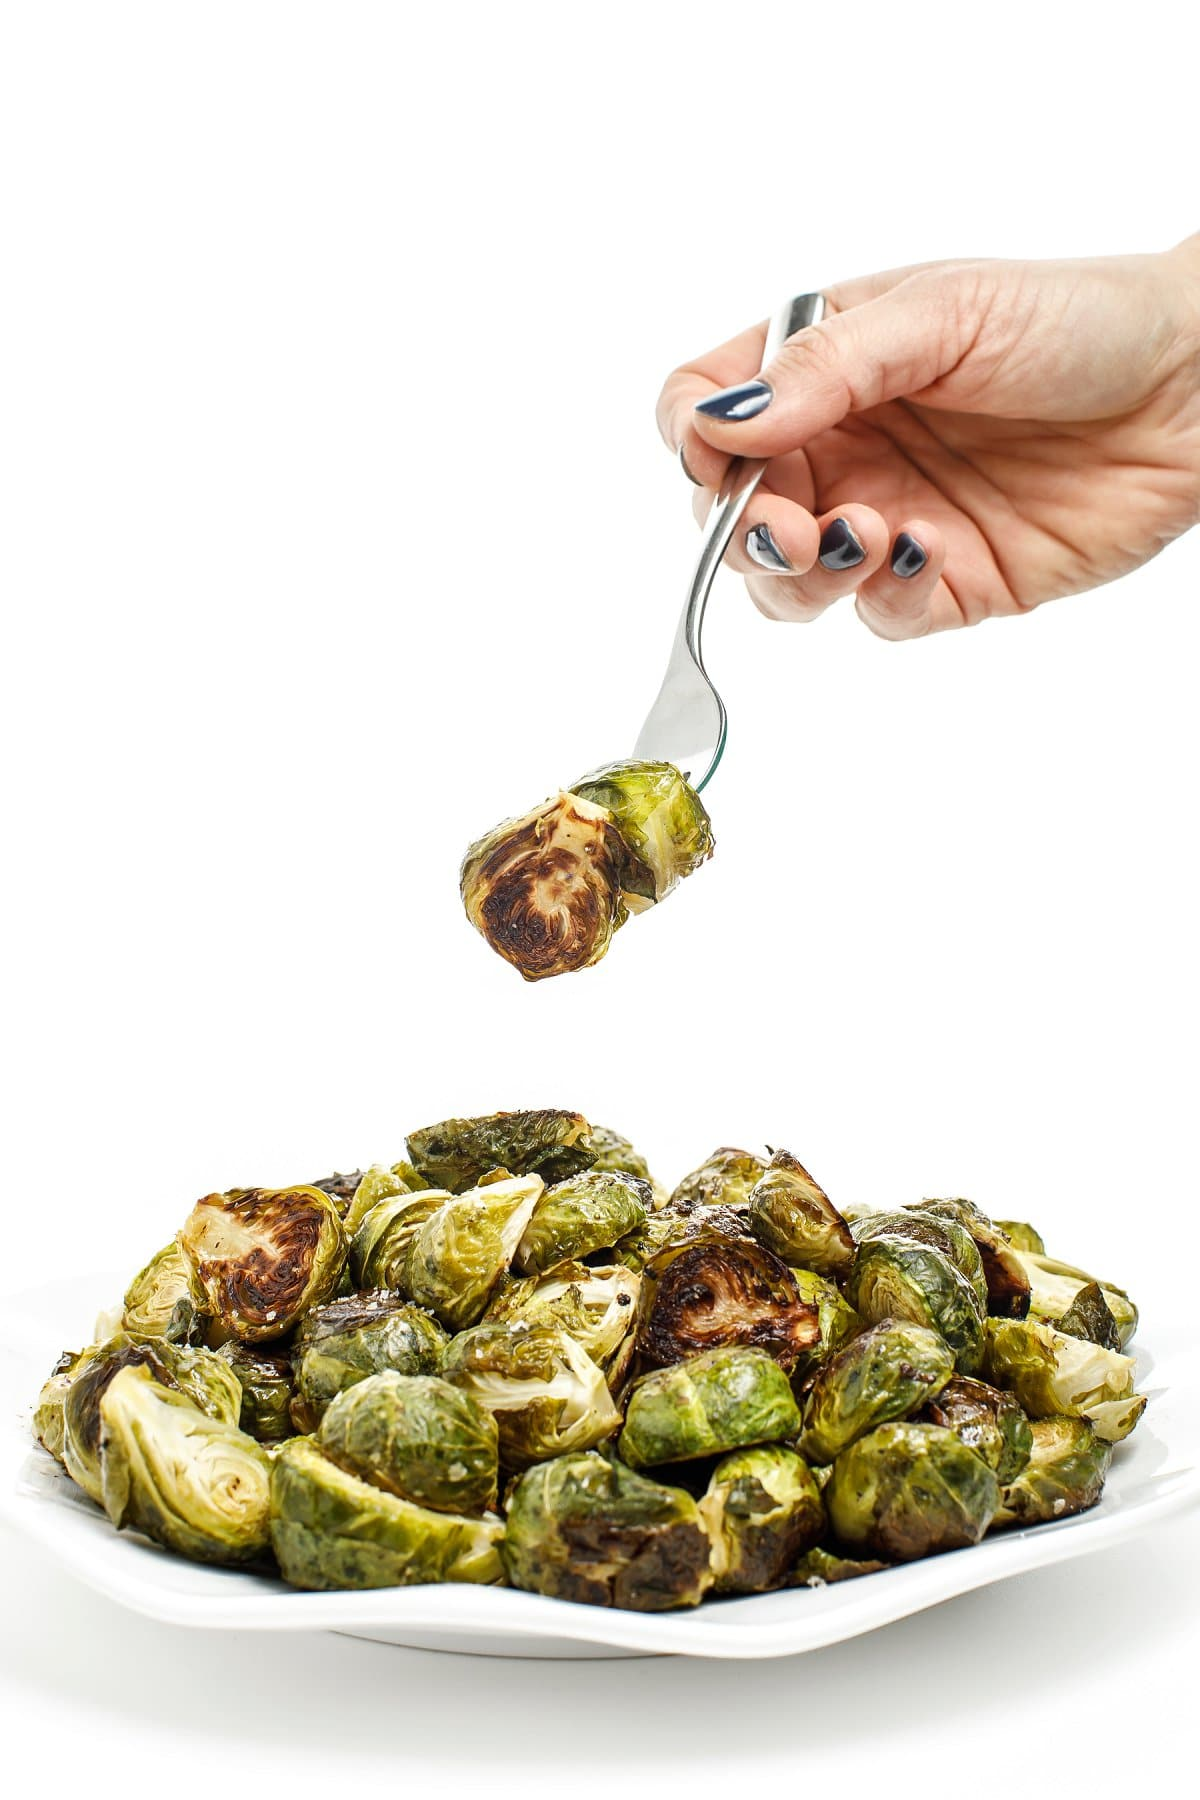 Brussels sprout on fork